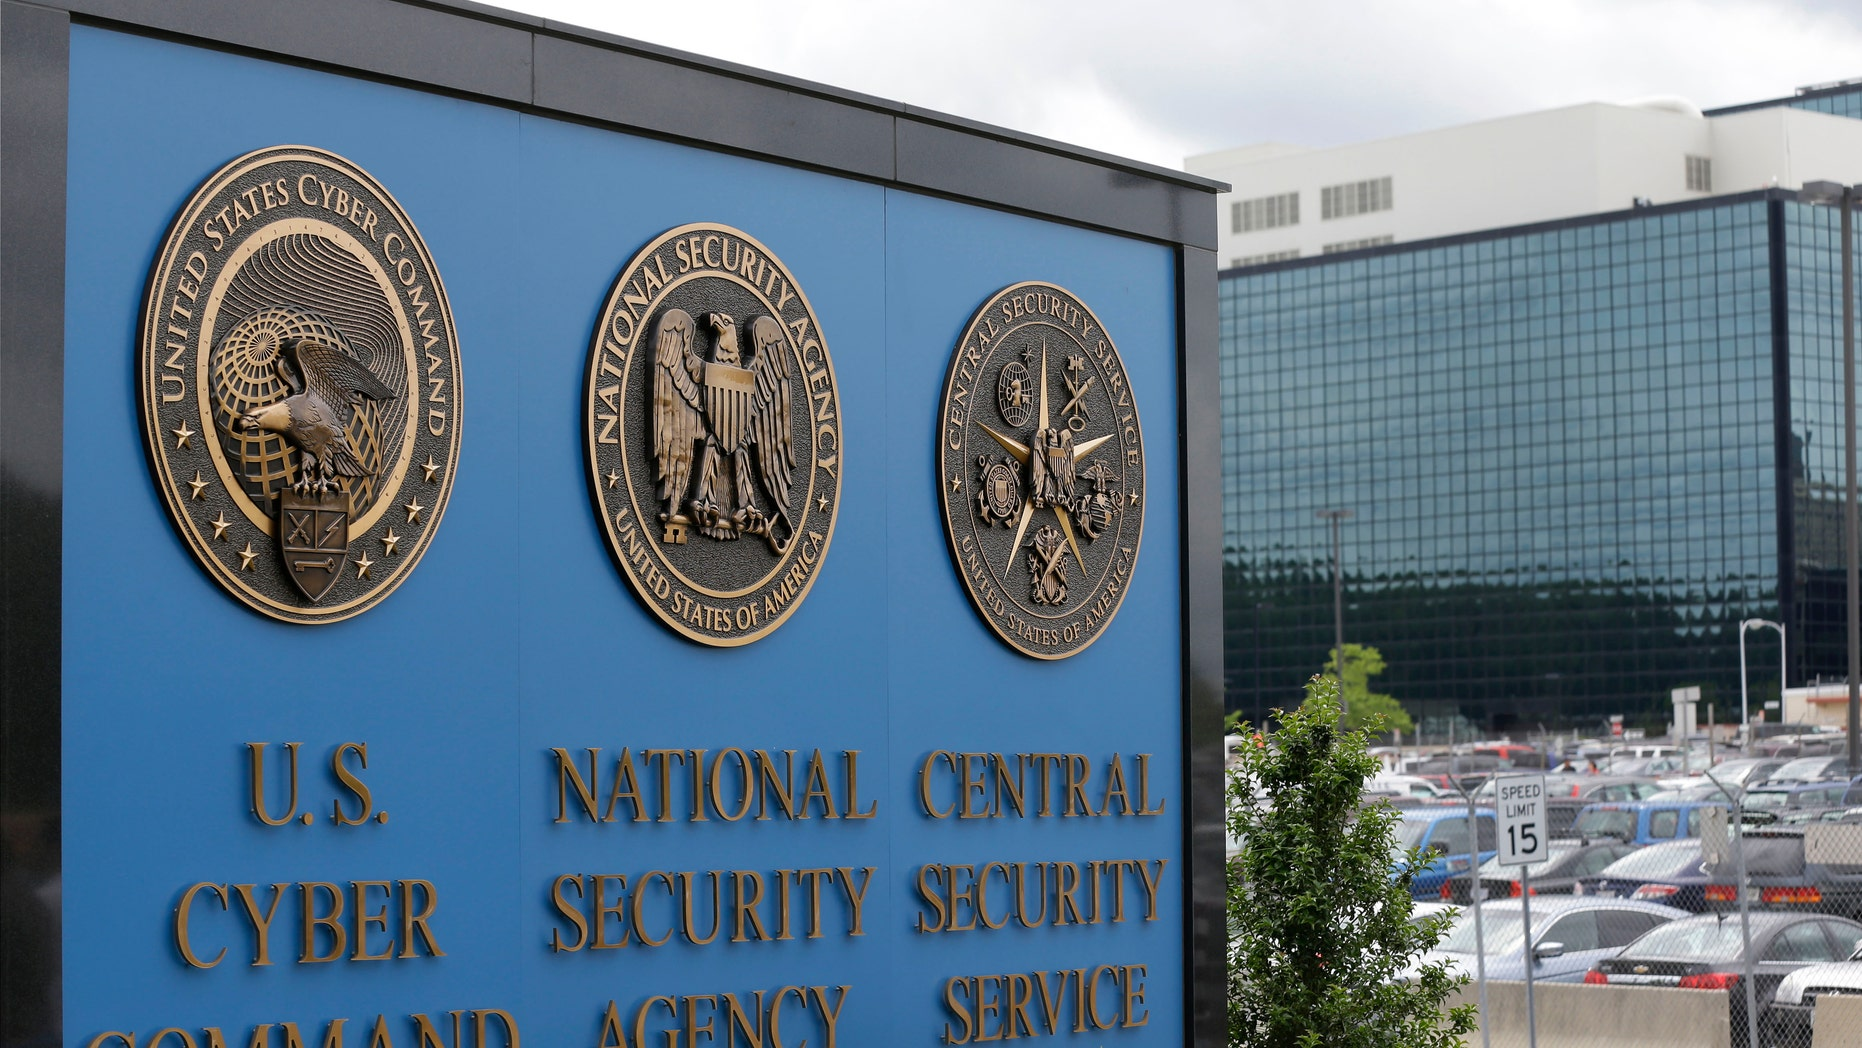 This June 6, 213 file photo shows the sign outside the National Security Agency (NSA) campus in Fort Meade, Md. (AP Photo/Patrick Semansky, File)